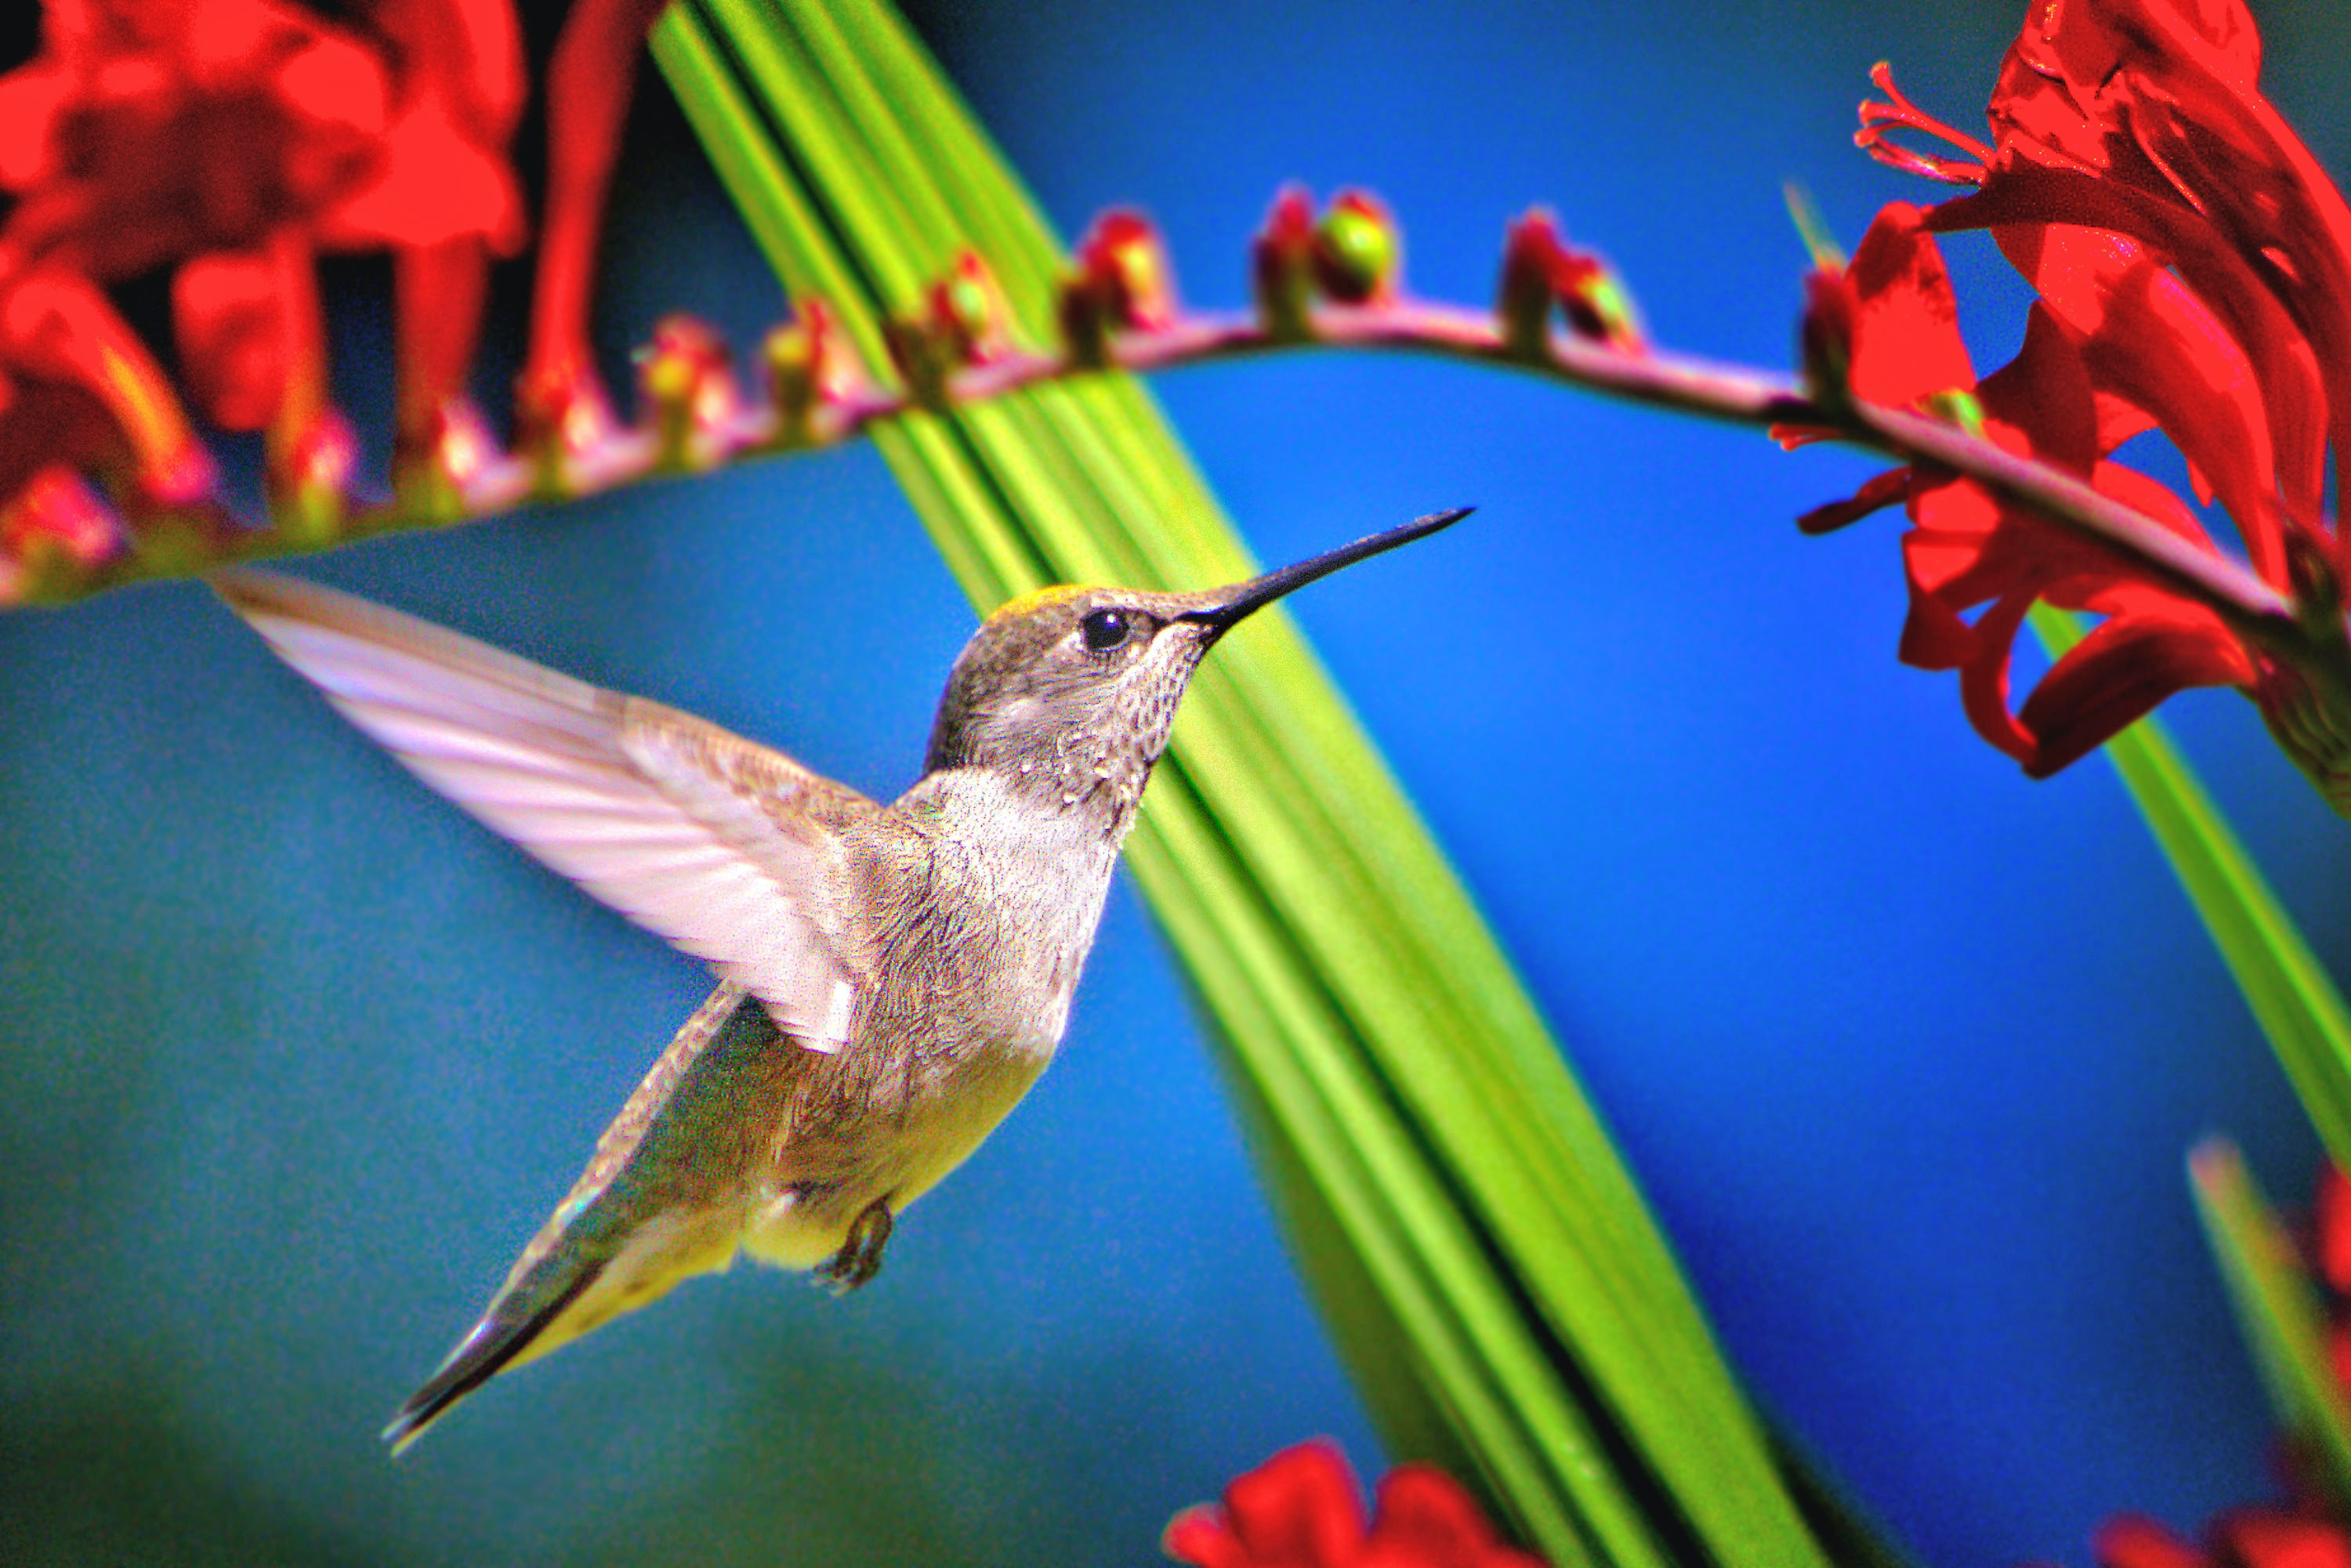 hummingbird near red petaled flower